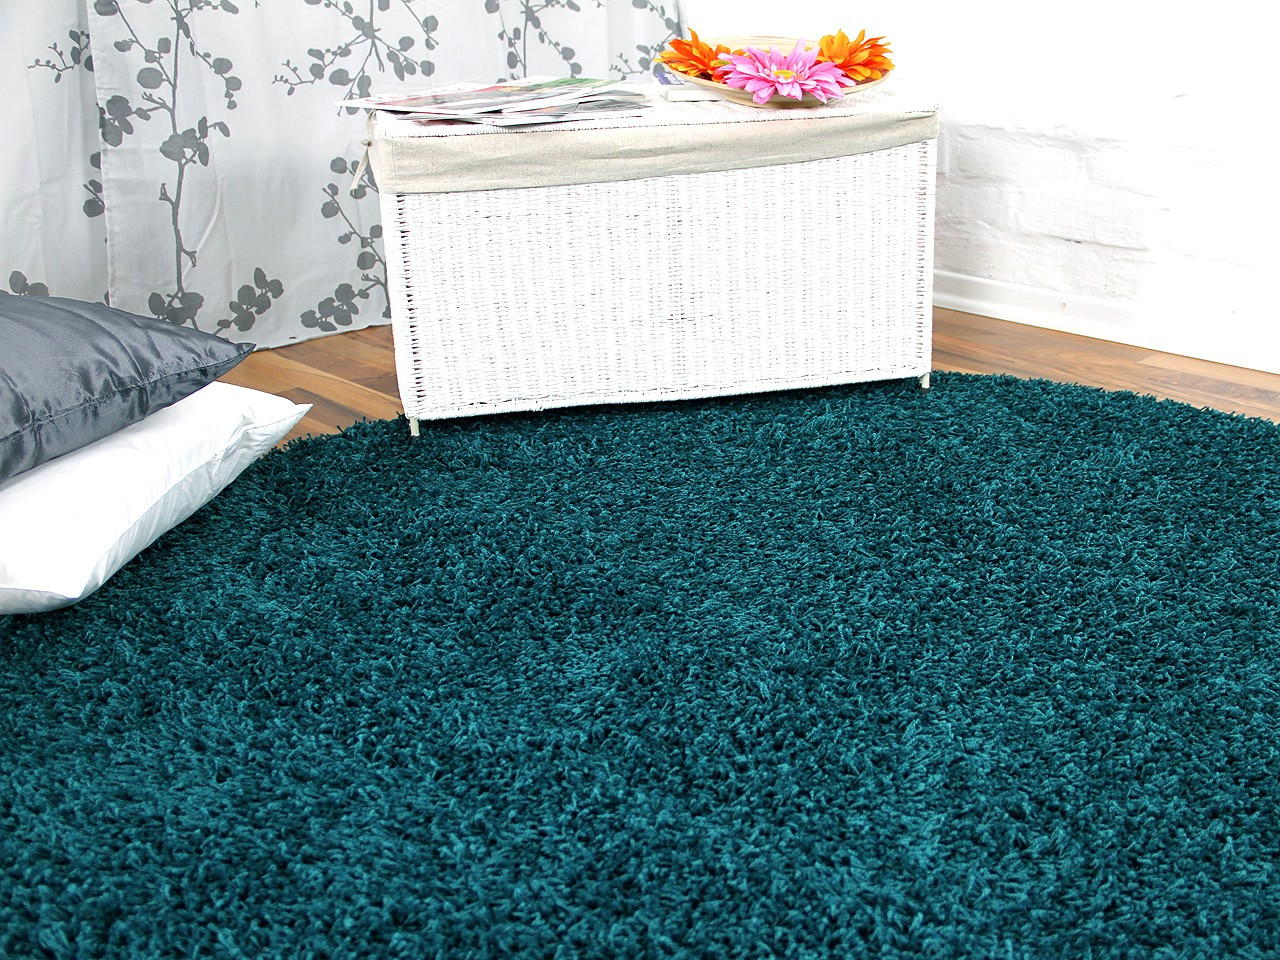 hochflor langflor teppich shaggy nova petrol rund sonderaktion sonderposten hochflor langflor. Black Bedroom Furniture Sets. Home Design Ideas